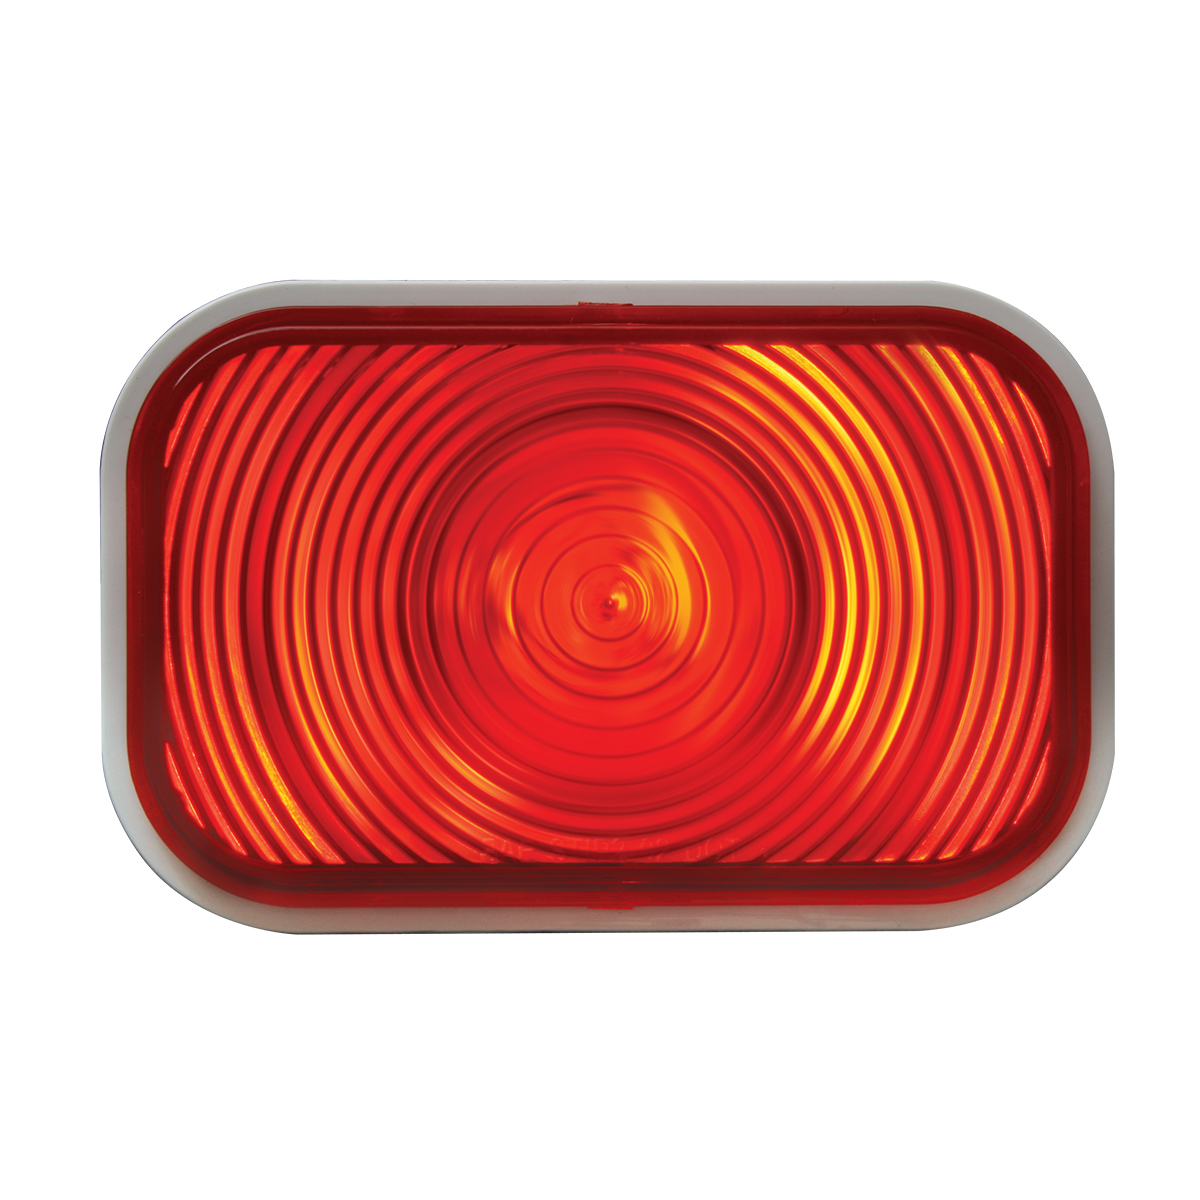 #80785 Rectangular Incandescent Flat Red/Red Light